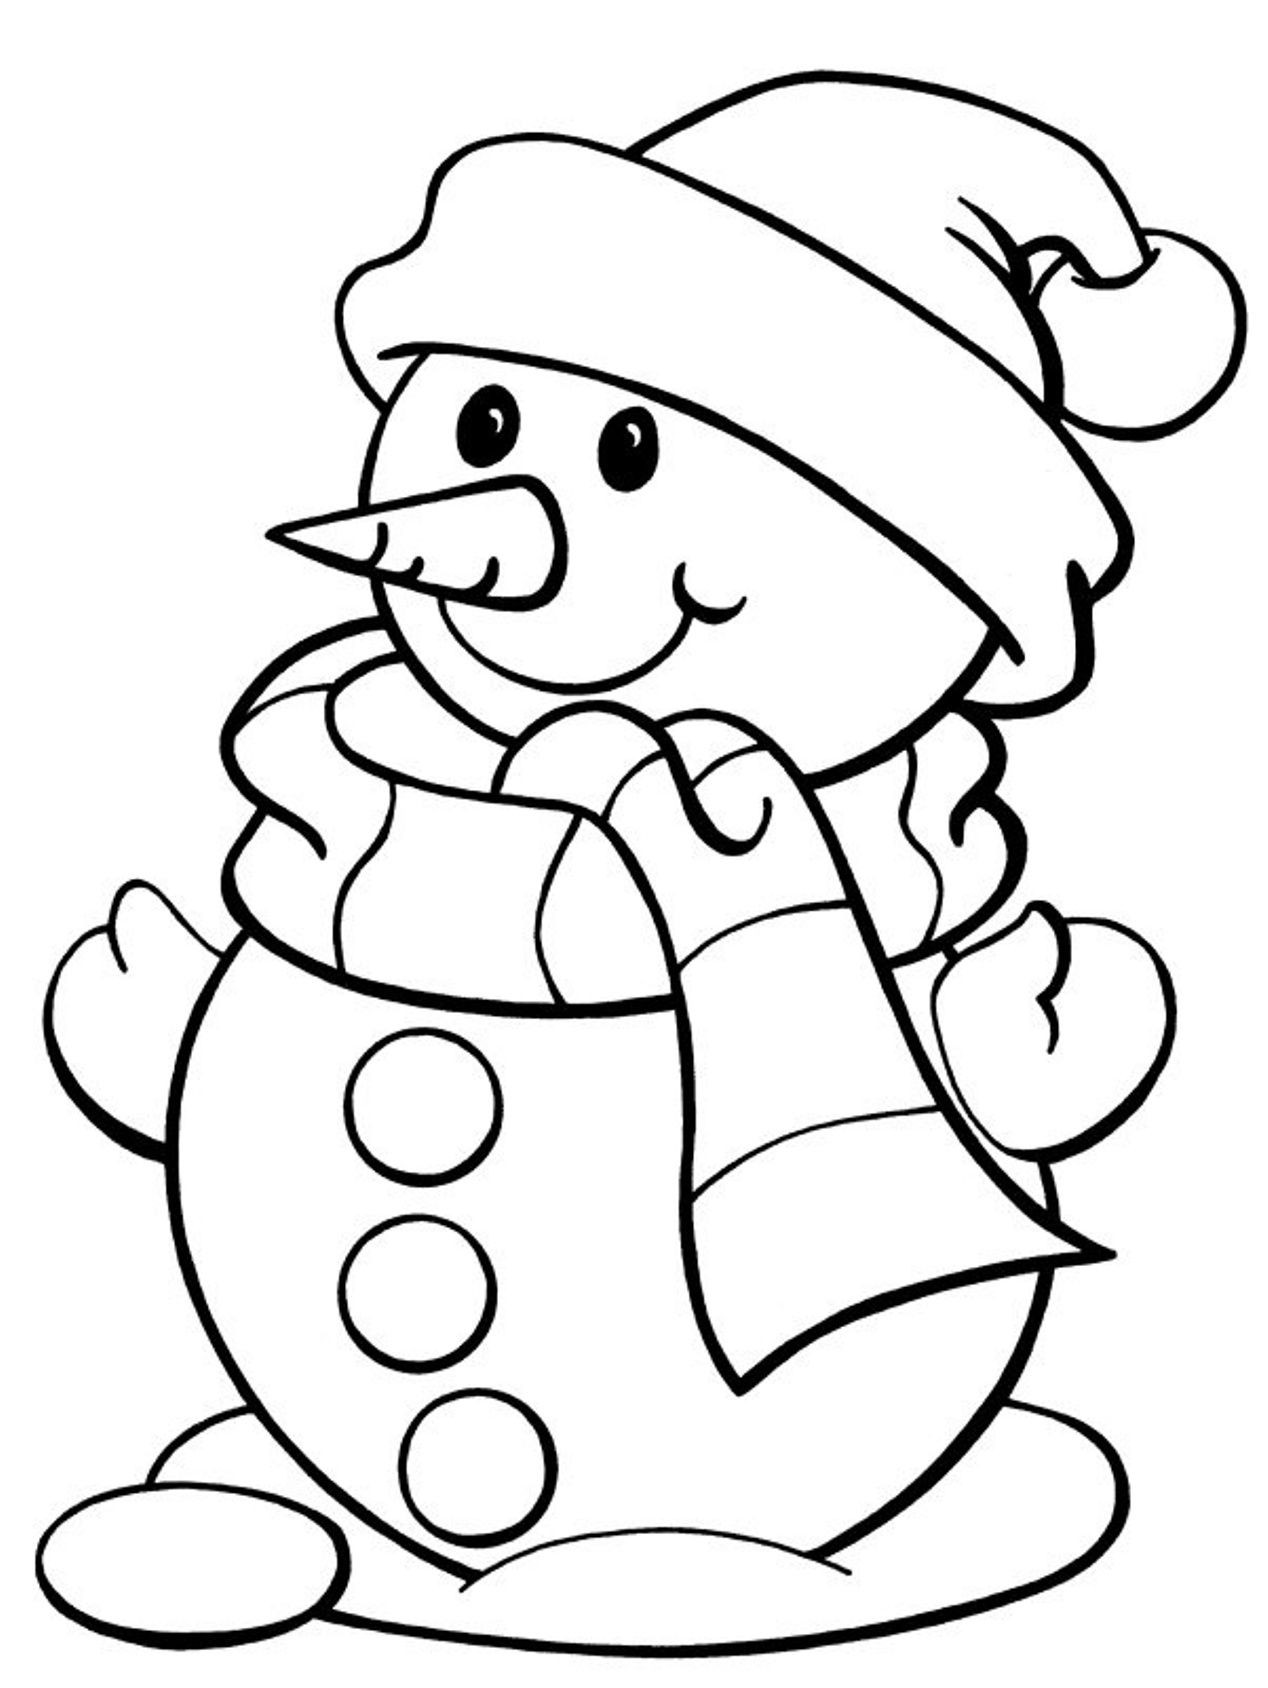 Free Coloring Sheets For Kids Winter  Winter Coloring Snowman Coloring Pages Winter Free